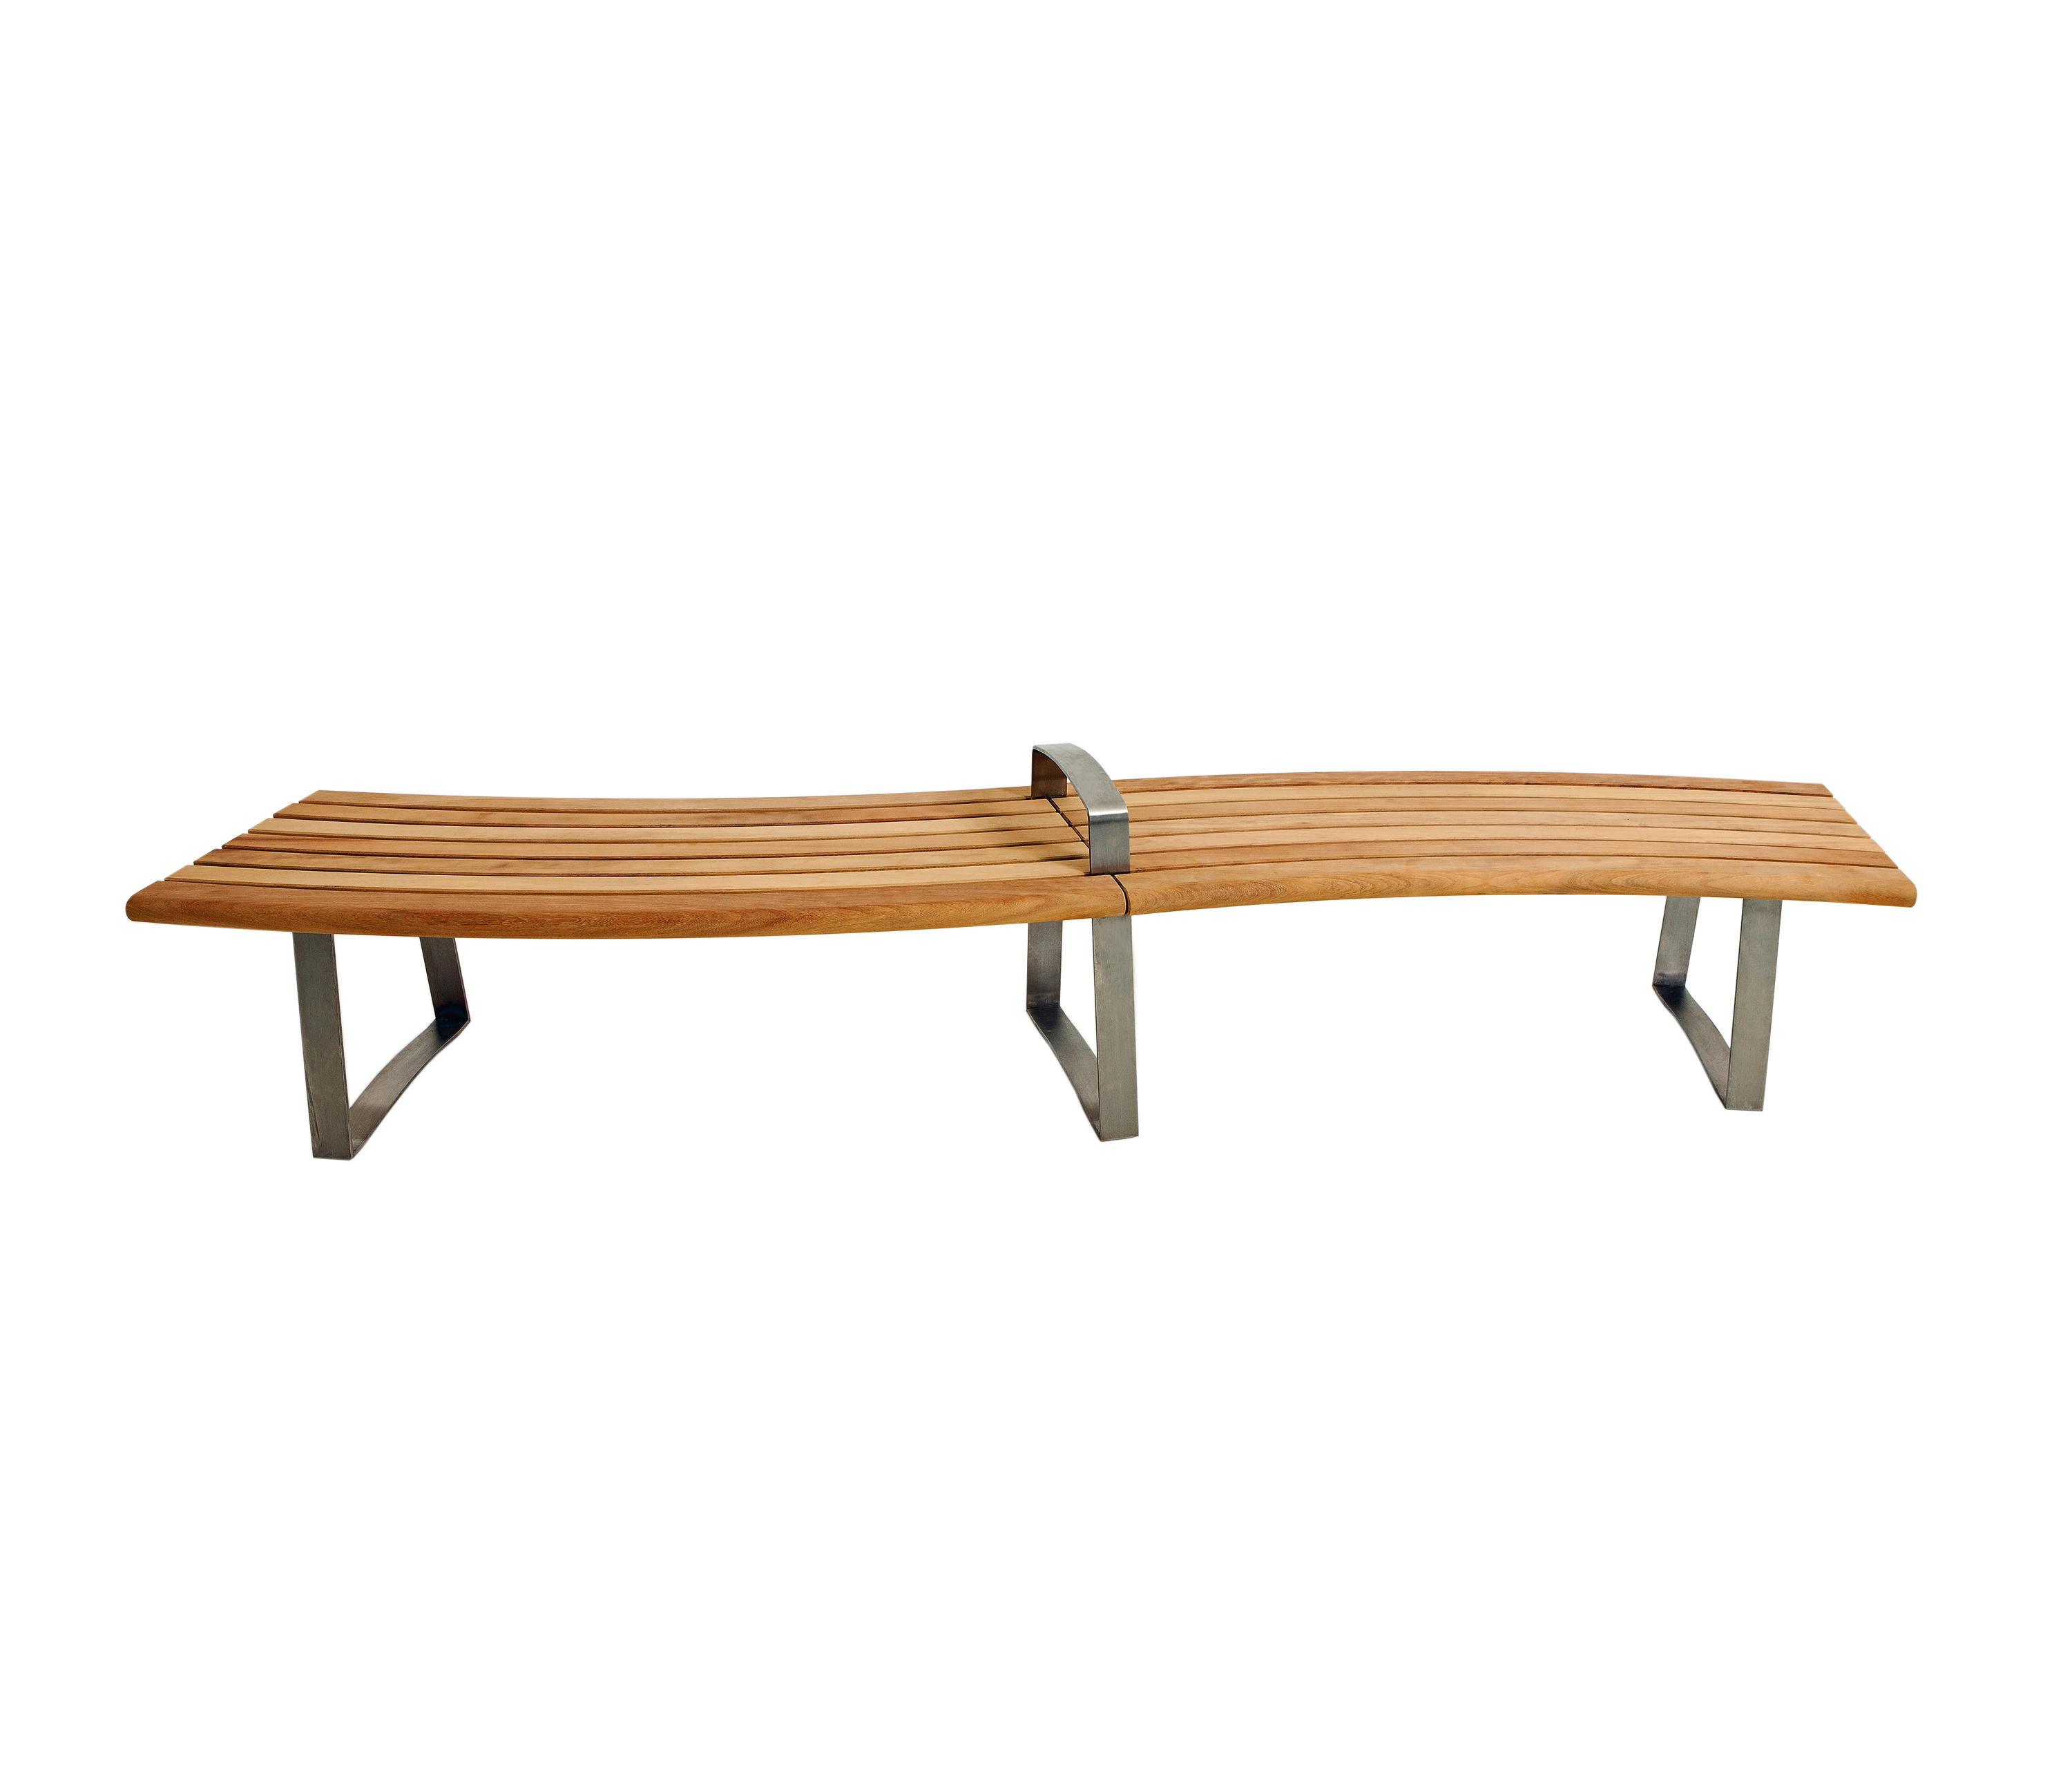 MEKO BENCH CURVED Waiting area benches from Benchmark